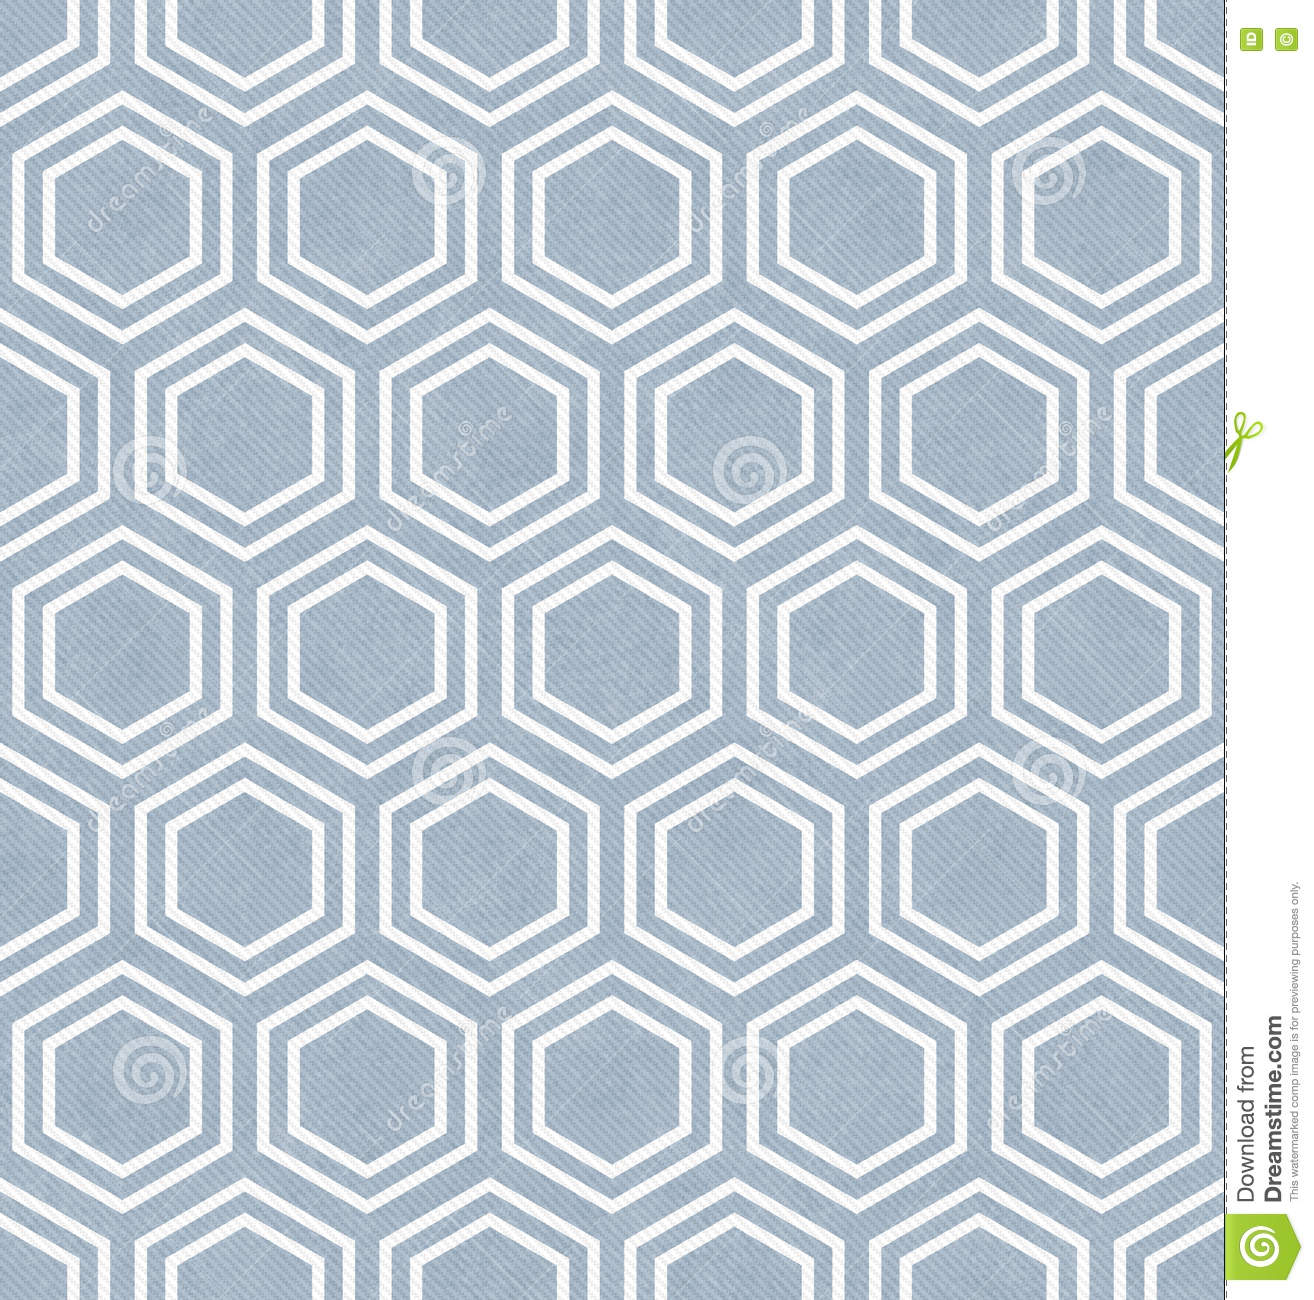 Blue And White Hexagon Tile Pattern Repeat Background Stock ...